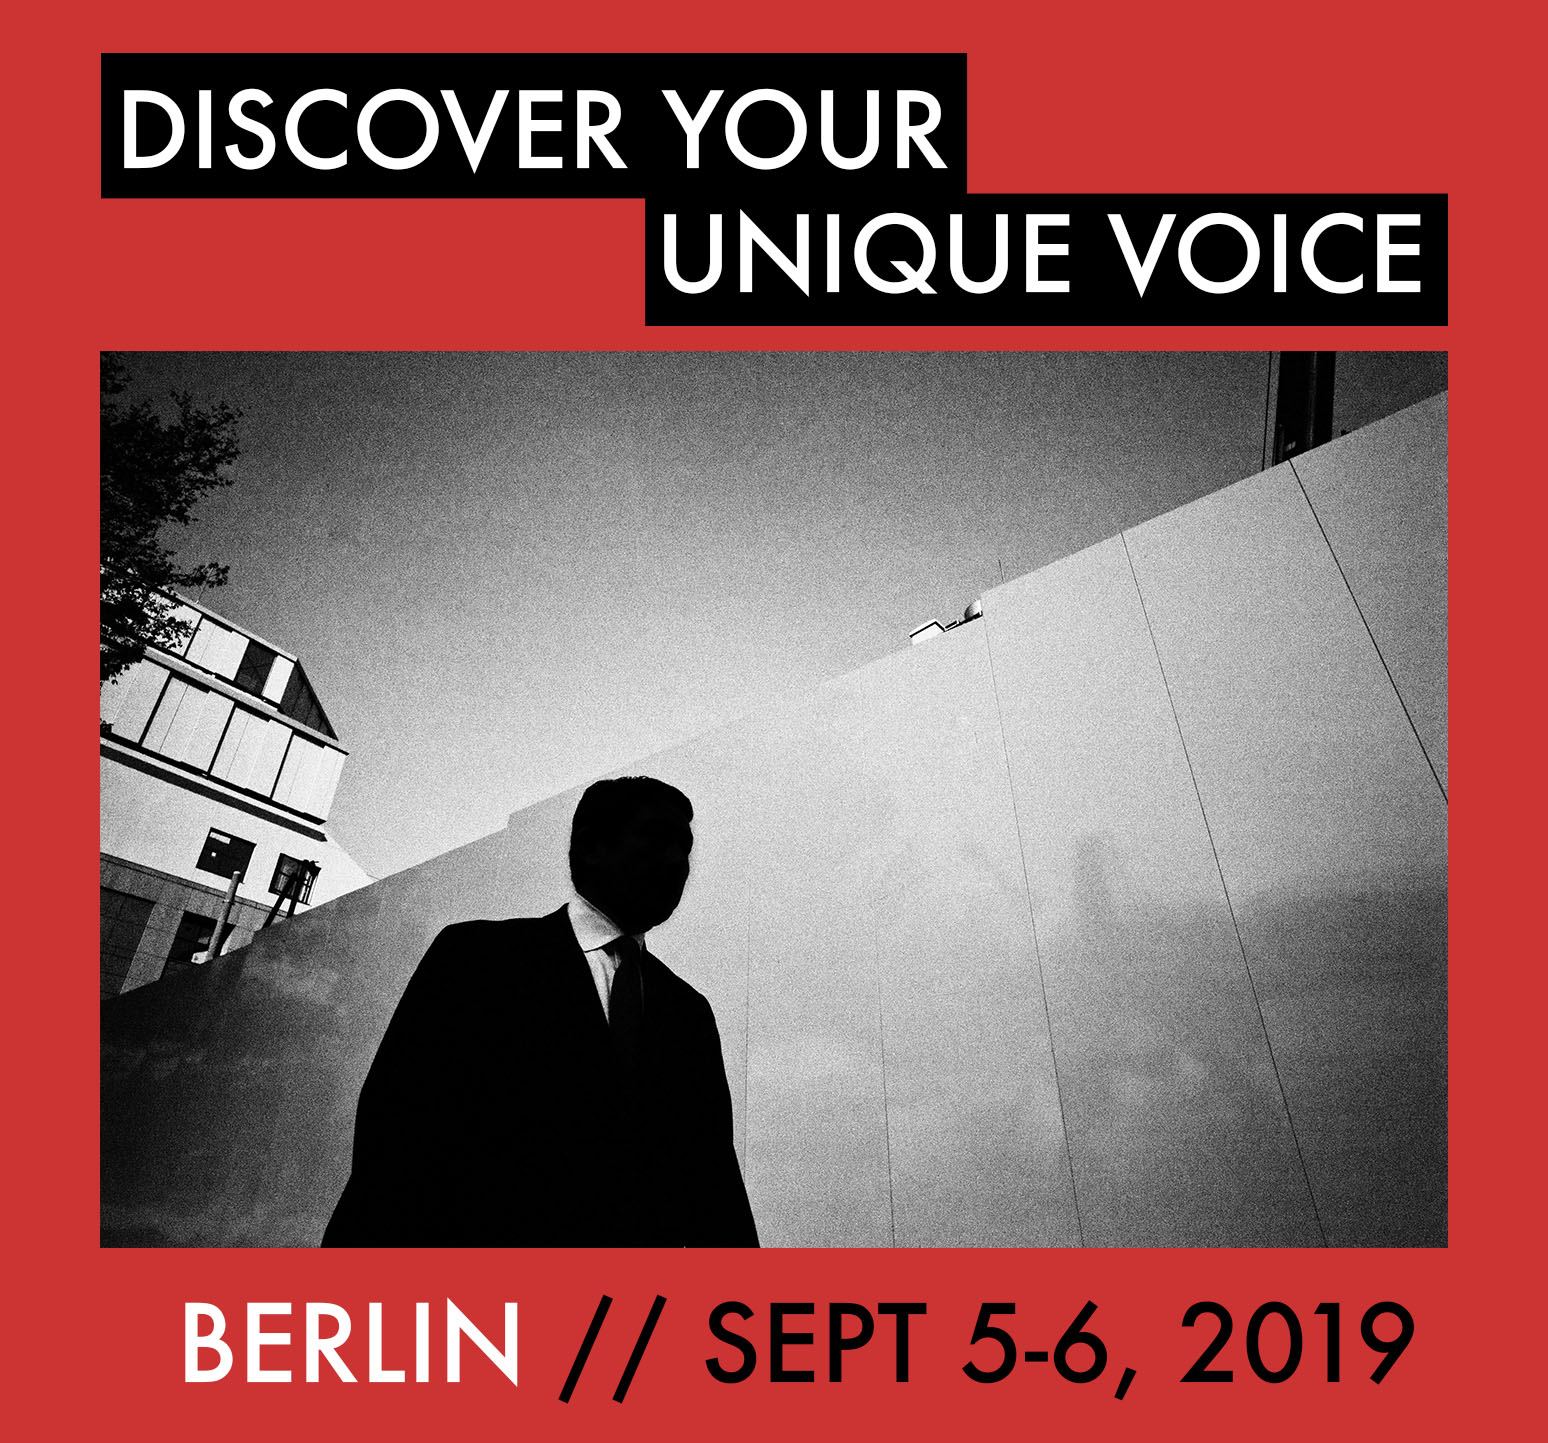 ERIC KIM BERLIN 2019 BANNER DISCOVER YOUR UNIQUE VOICE